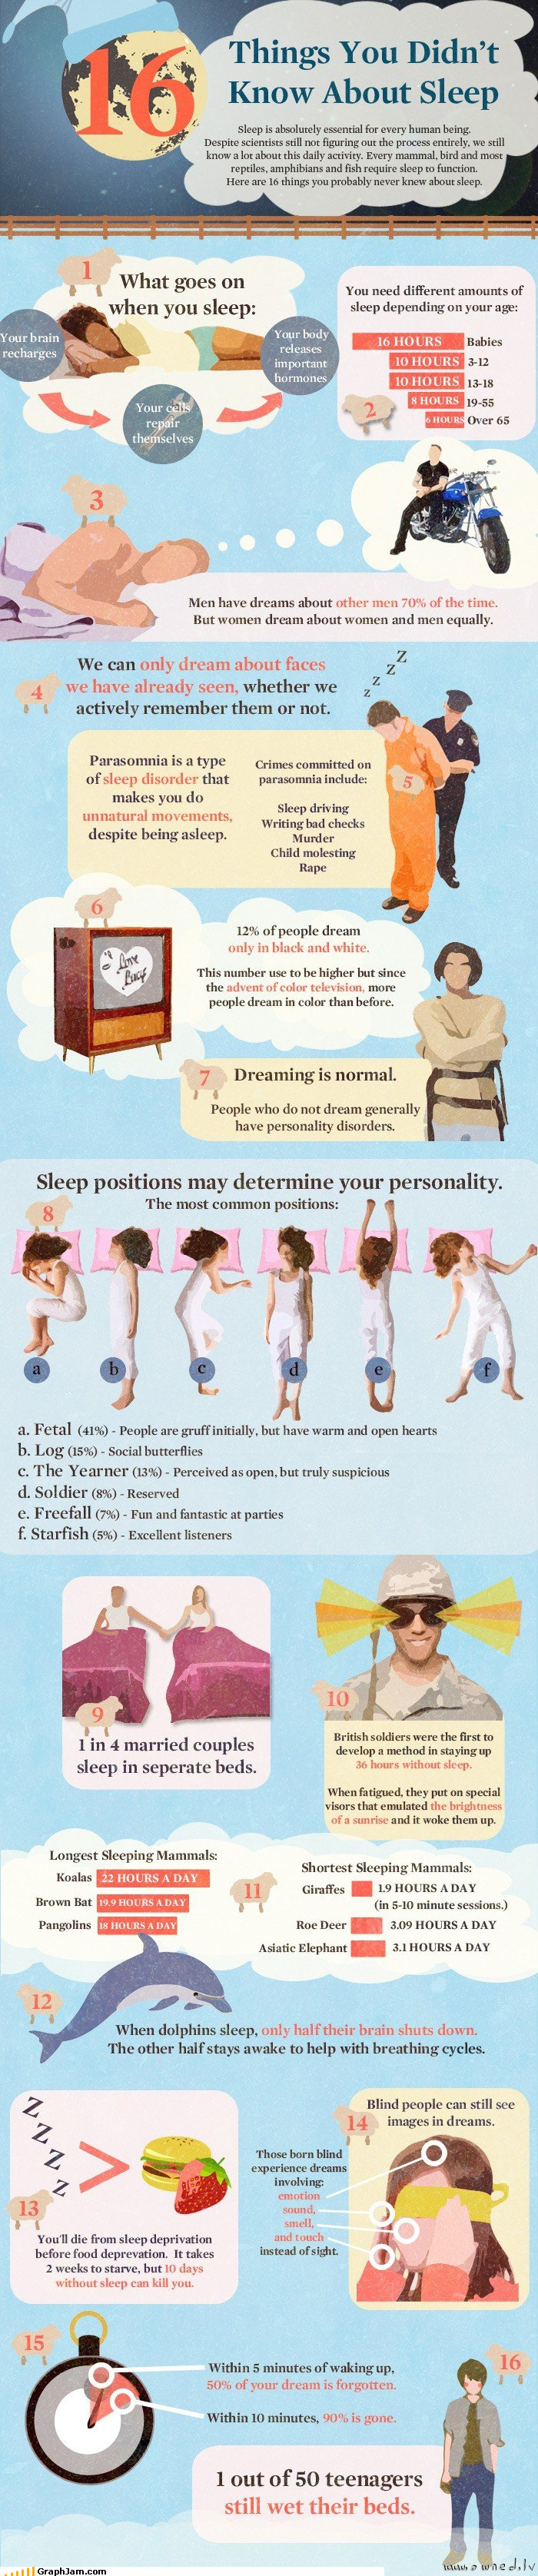 bedwetting cells facts infographic interesting sheep sleep - 4369026048